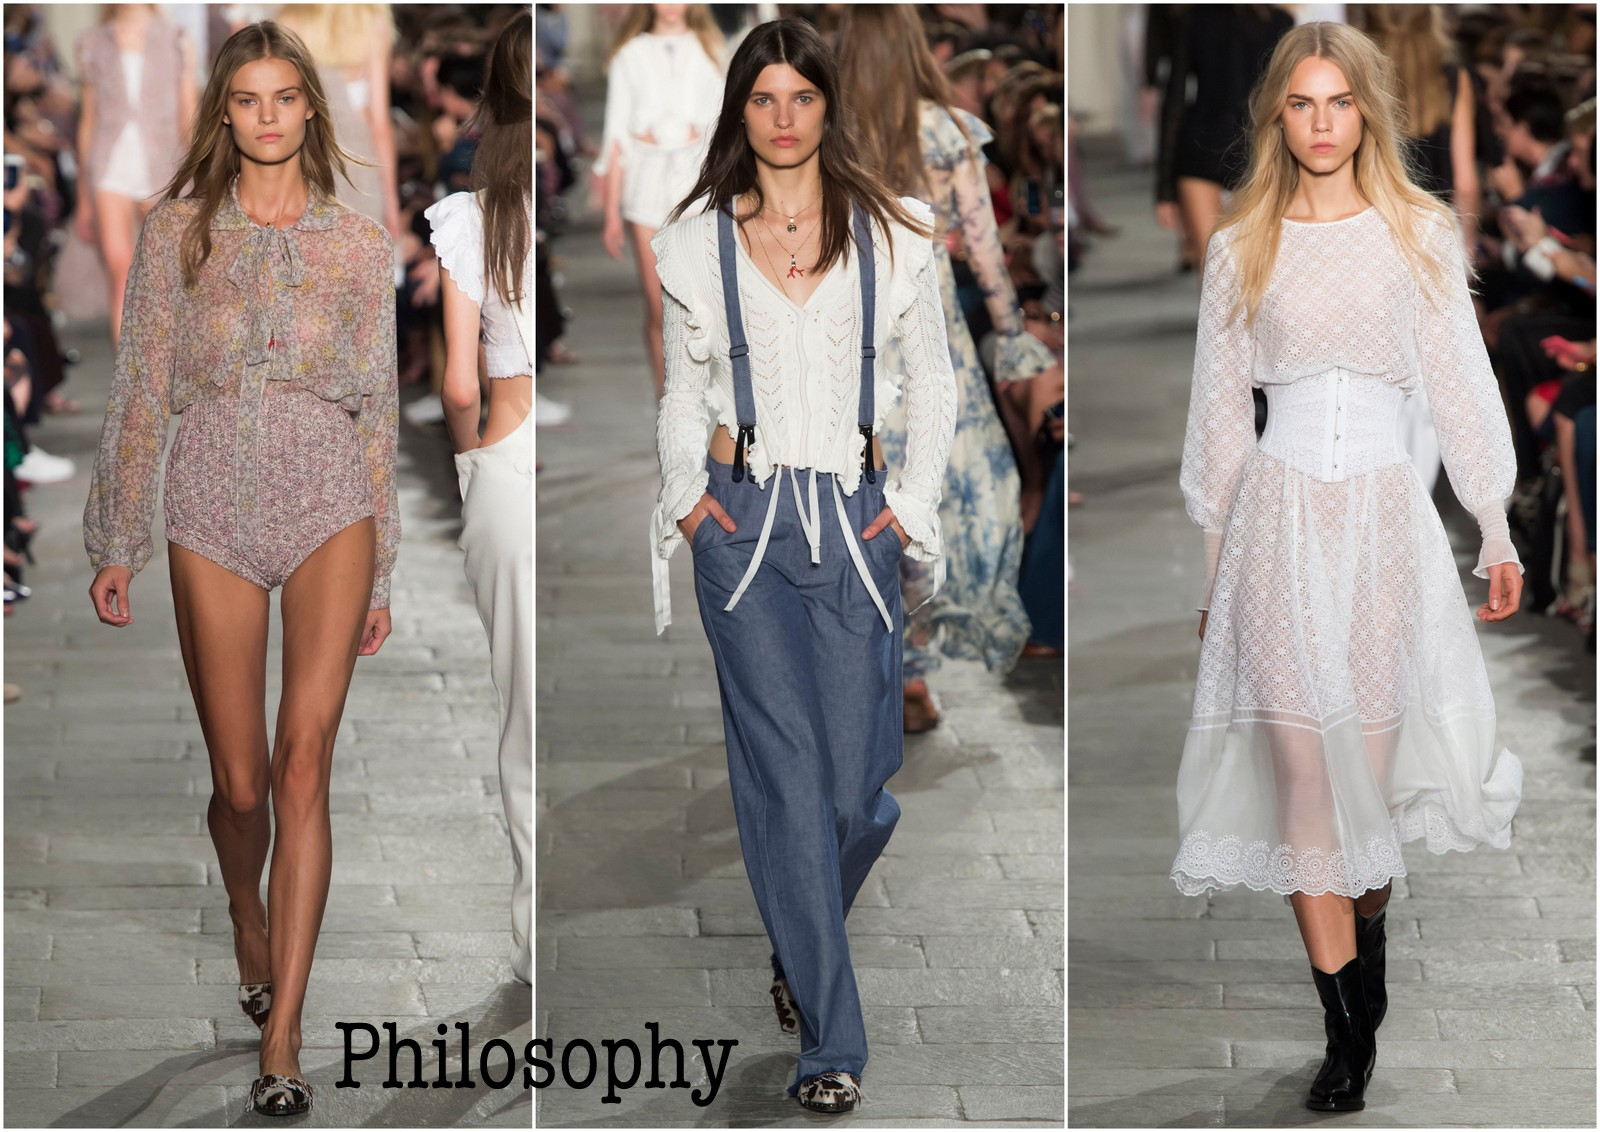 Milan Fashion Week, ss16, MFW, highlights, philosophy, msgm, gucci, etro, marni, roberto cavalli, peter dundas, tod's, alessandro michele, giorgio armani, versace, Dolce & Gabbana,